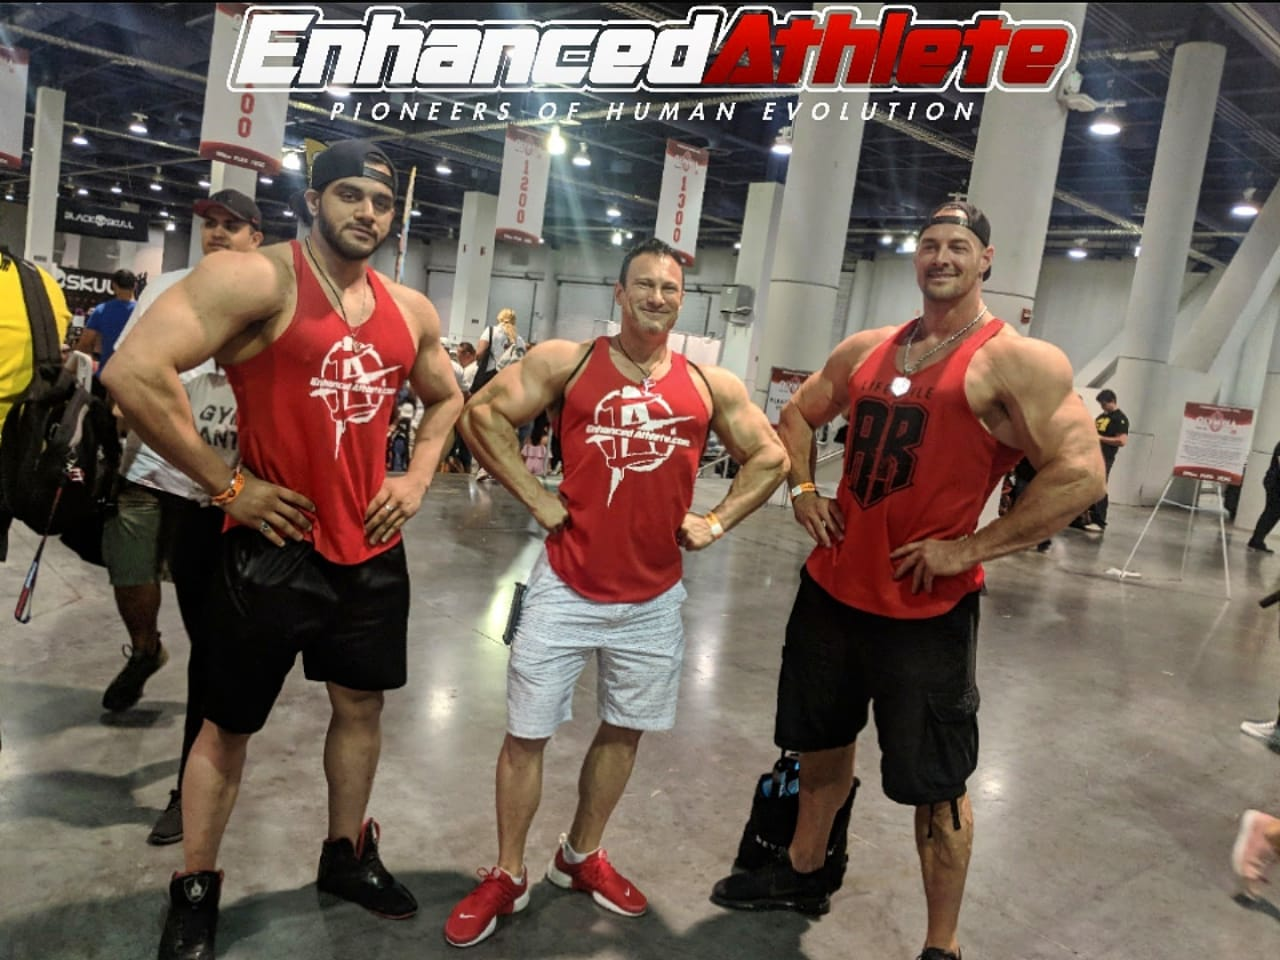 Right Aaron reed World tallest bodybuilder middle Dr.Tony huge left Harraj S Lamba